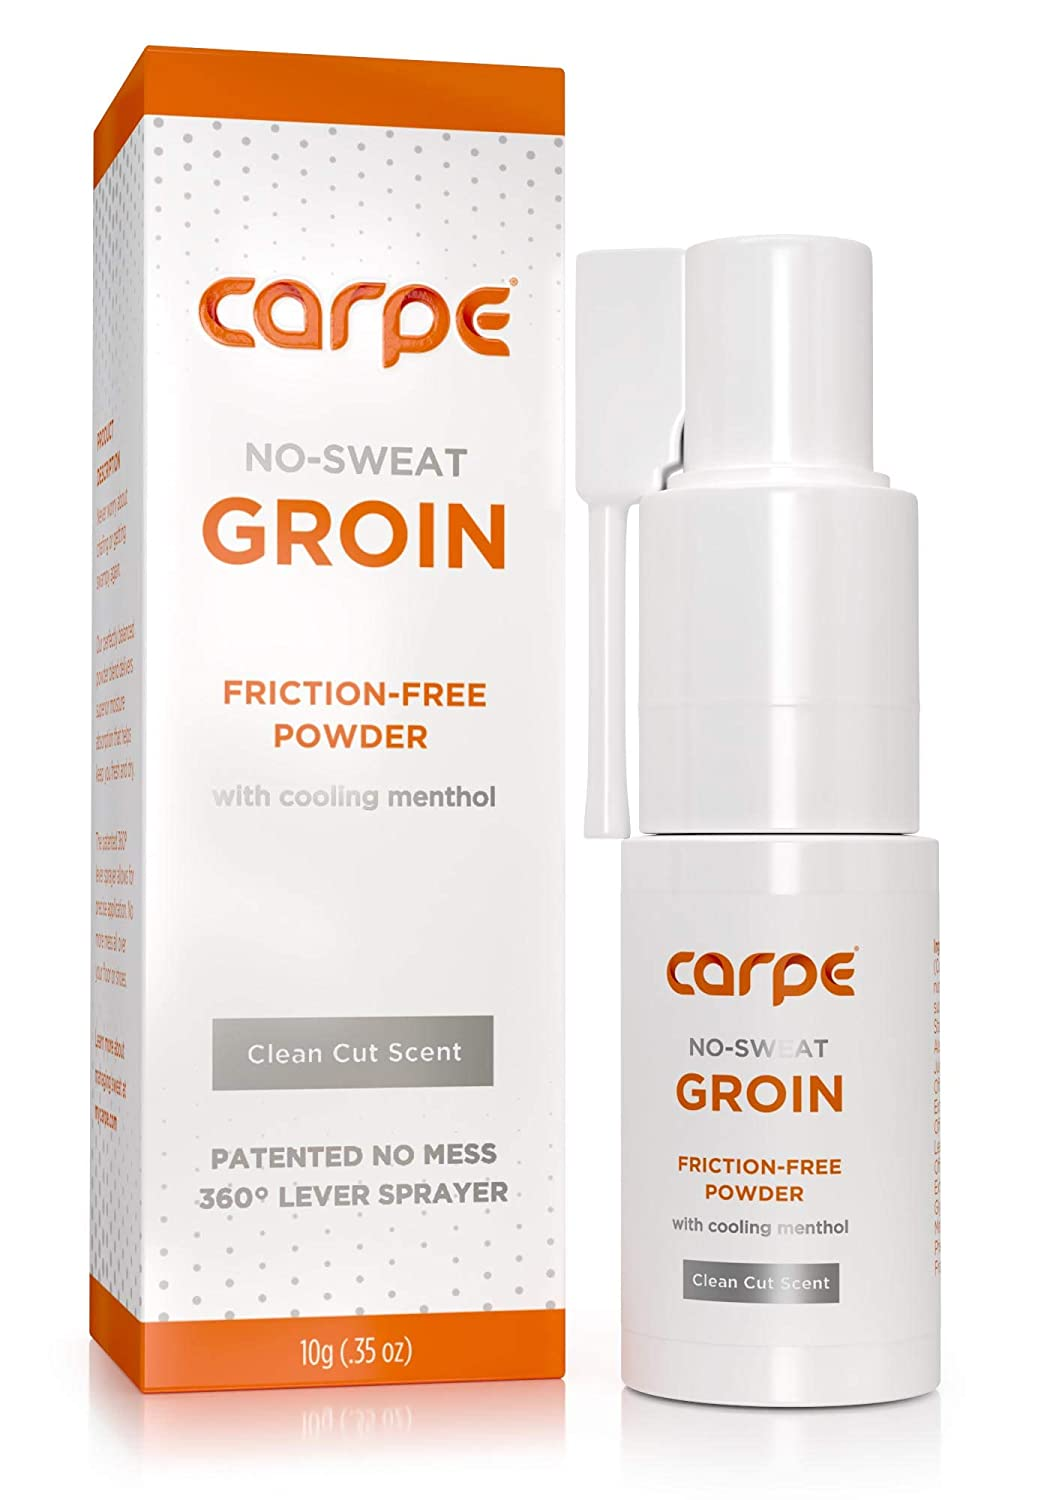 Carpe No-Sweat Groin Powder (For Men) with Precision Applicator - Designed for Maximum Sweat Absorption - Mess and Friction Free, Stop Chafing - 700+ Pumps Per Bottle